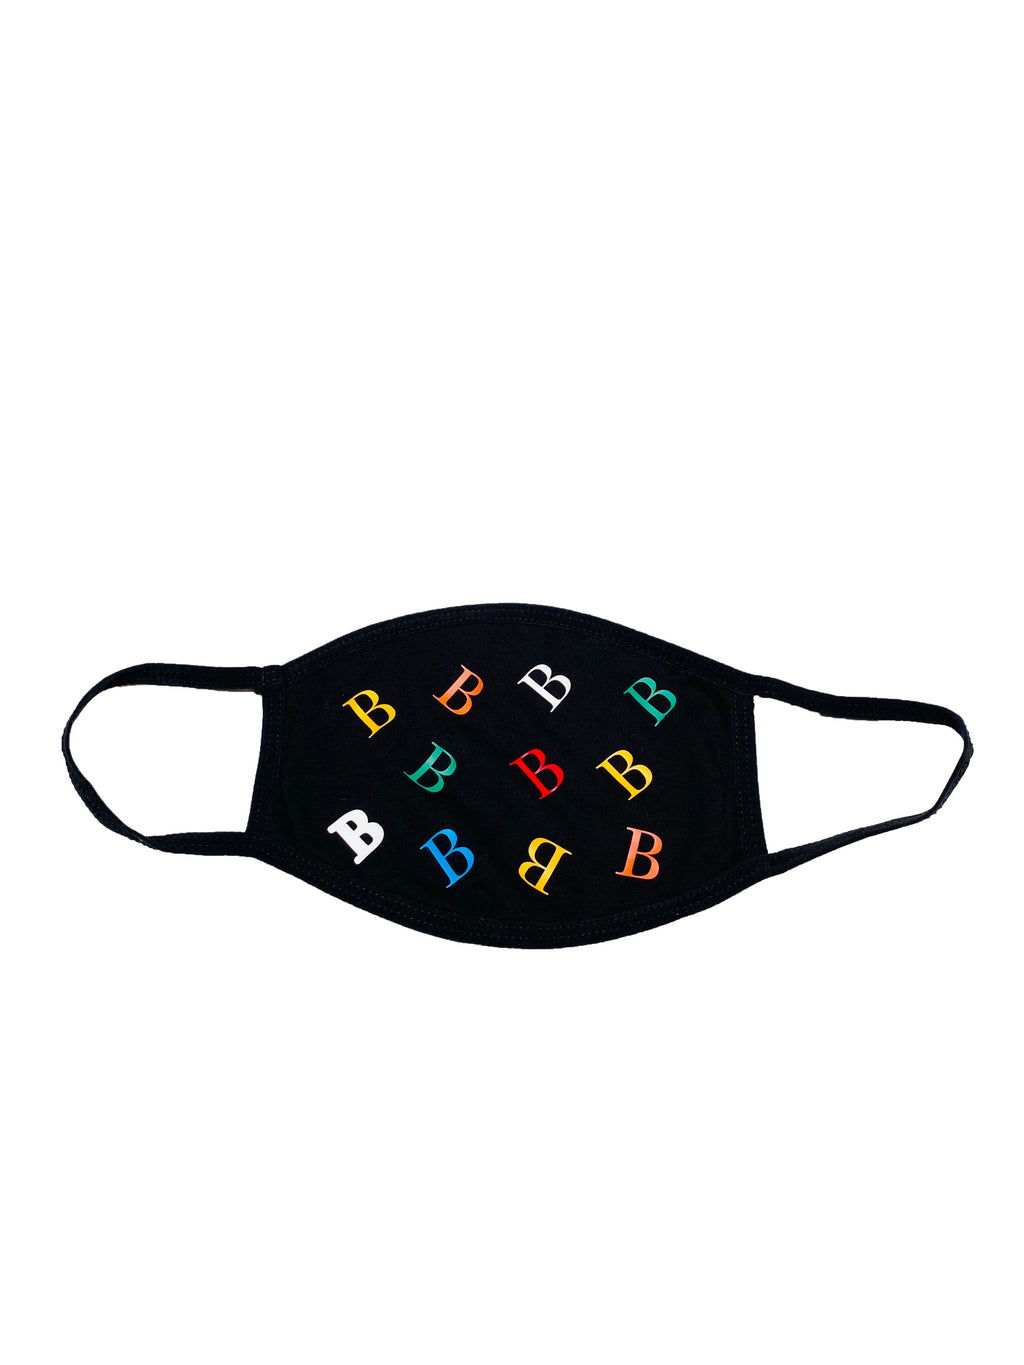 """B"" Allover Print Mask"